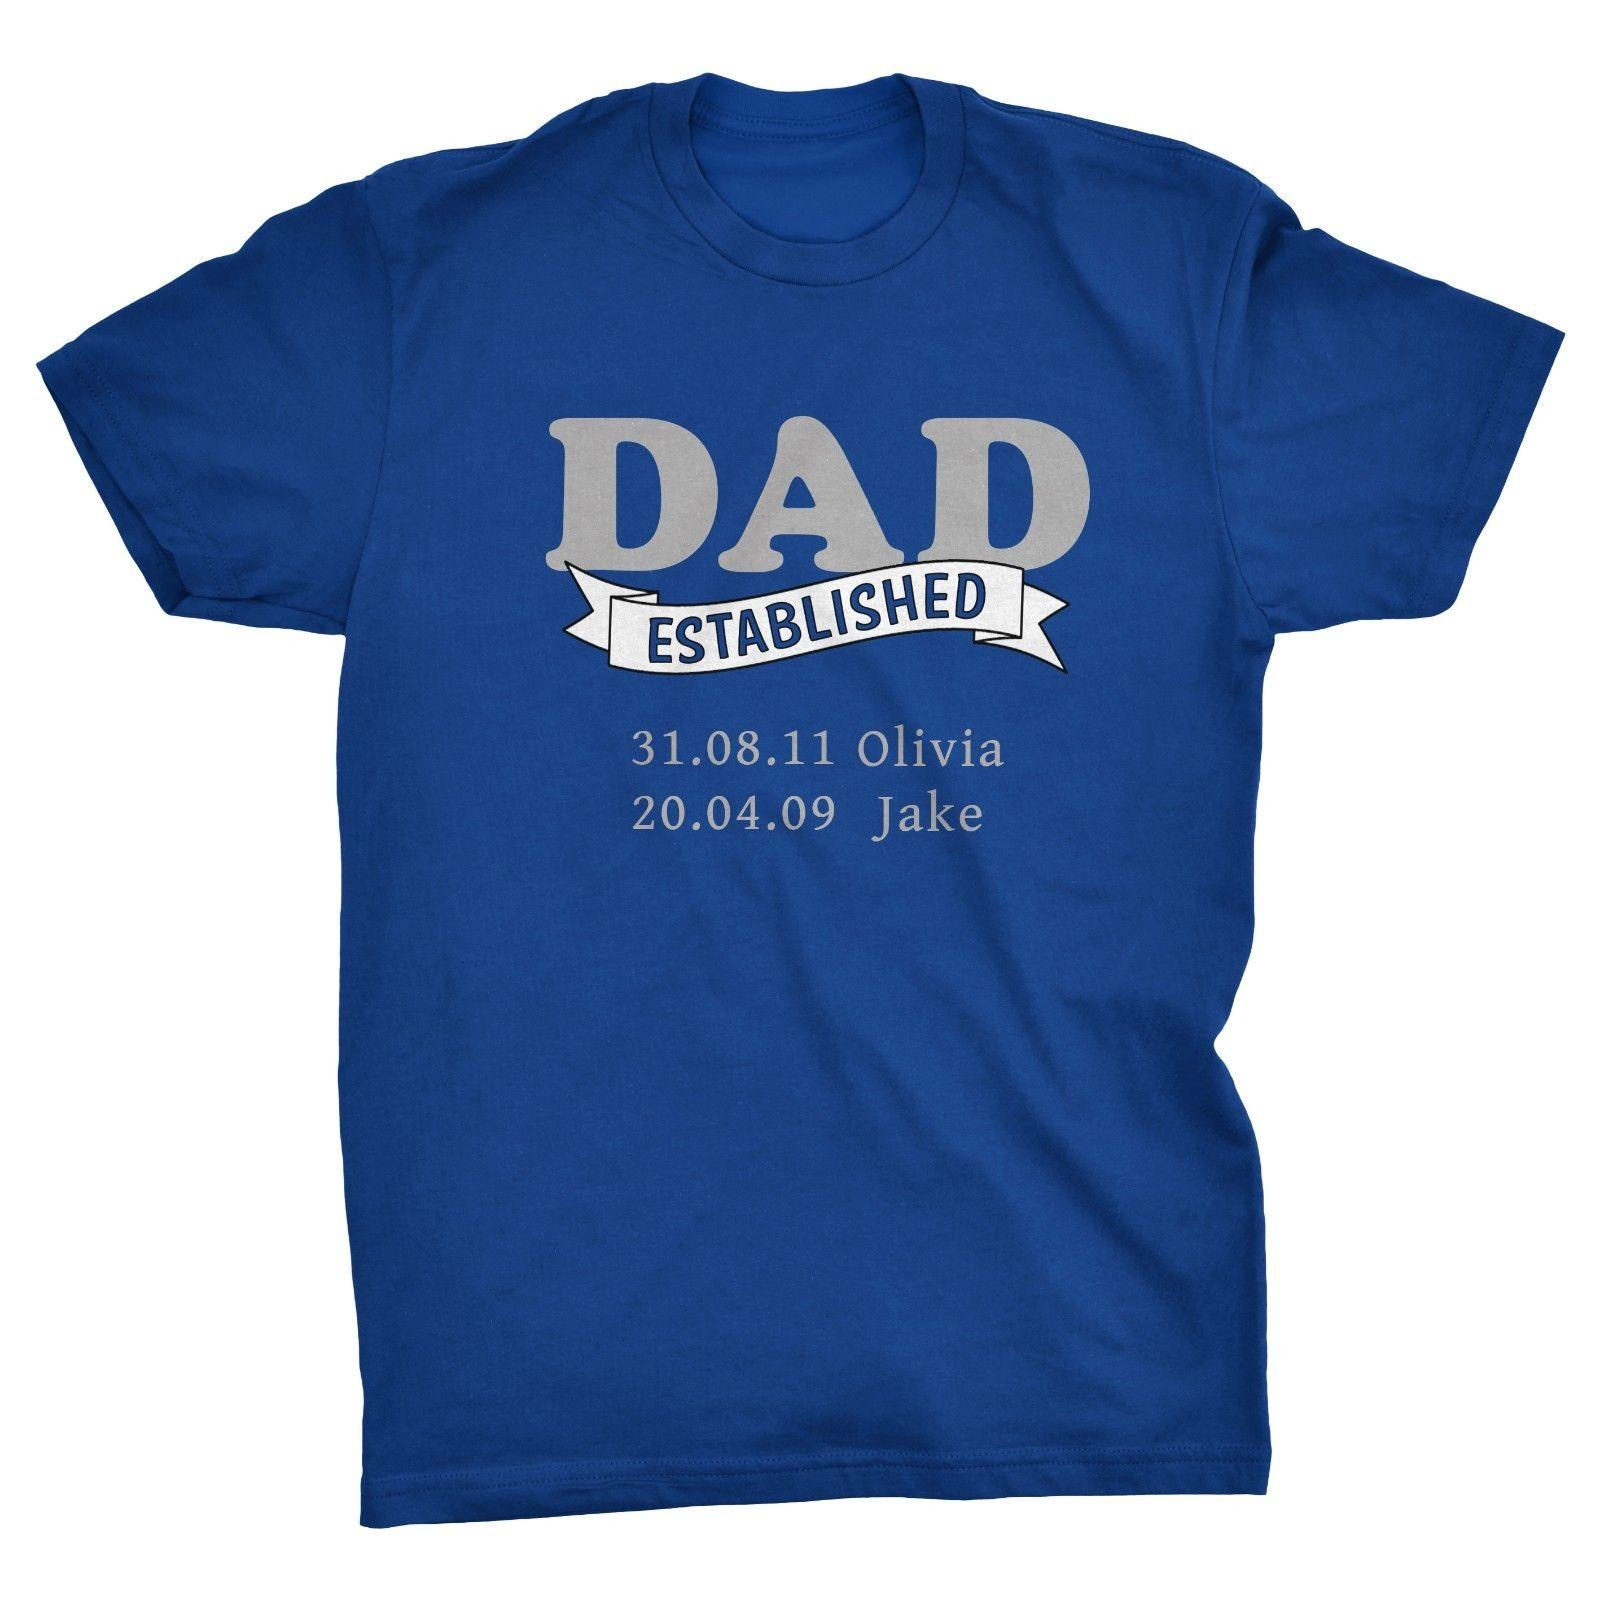 0f0d3a5d DAD Established Personalised Fathers Day T Shirt, Childrens Names And  Birthdays Cool Casual Pride T Shirt Men Clever Funny T Shirts Funny Tshirts  From ...